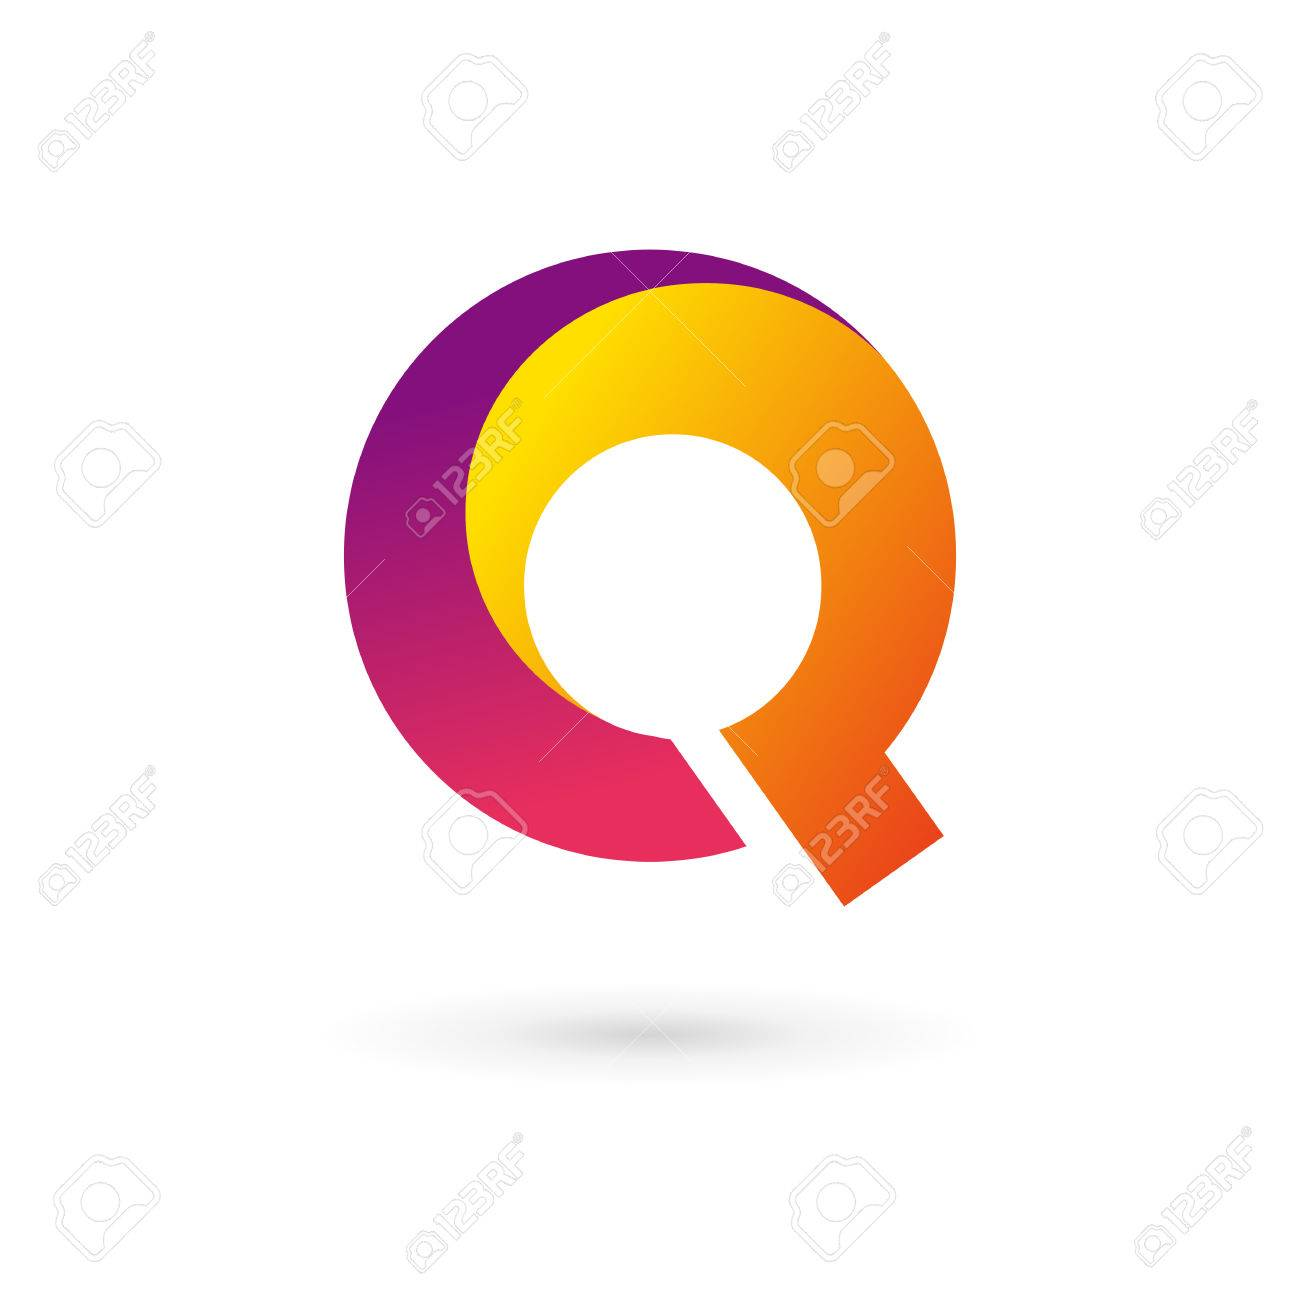 letter q logo icon design template elements royalty free cliparts